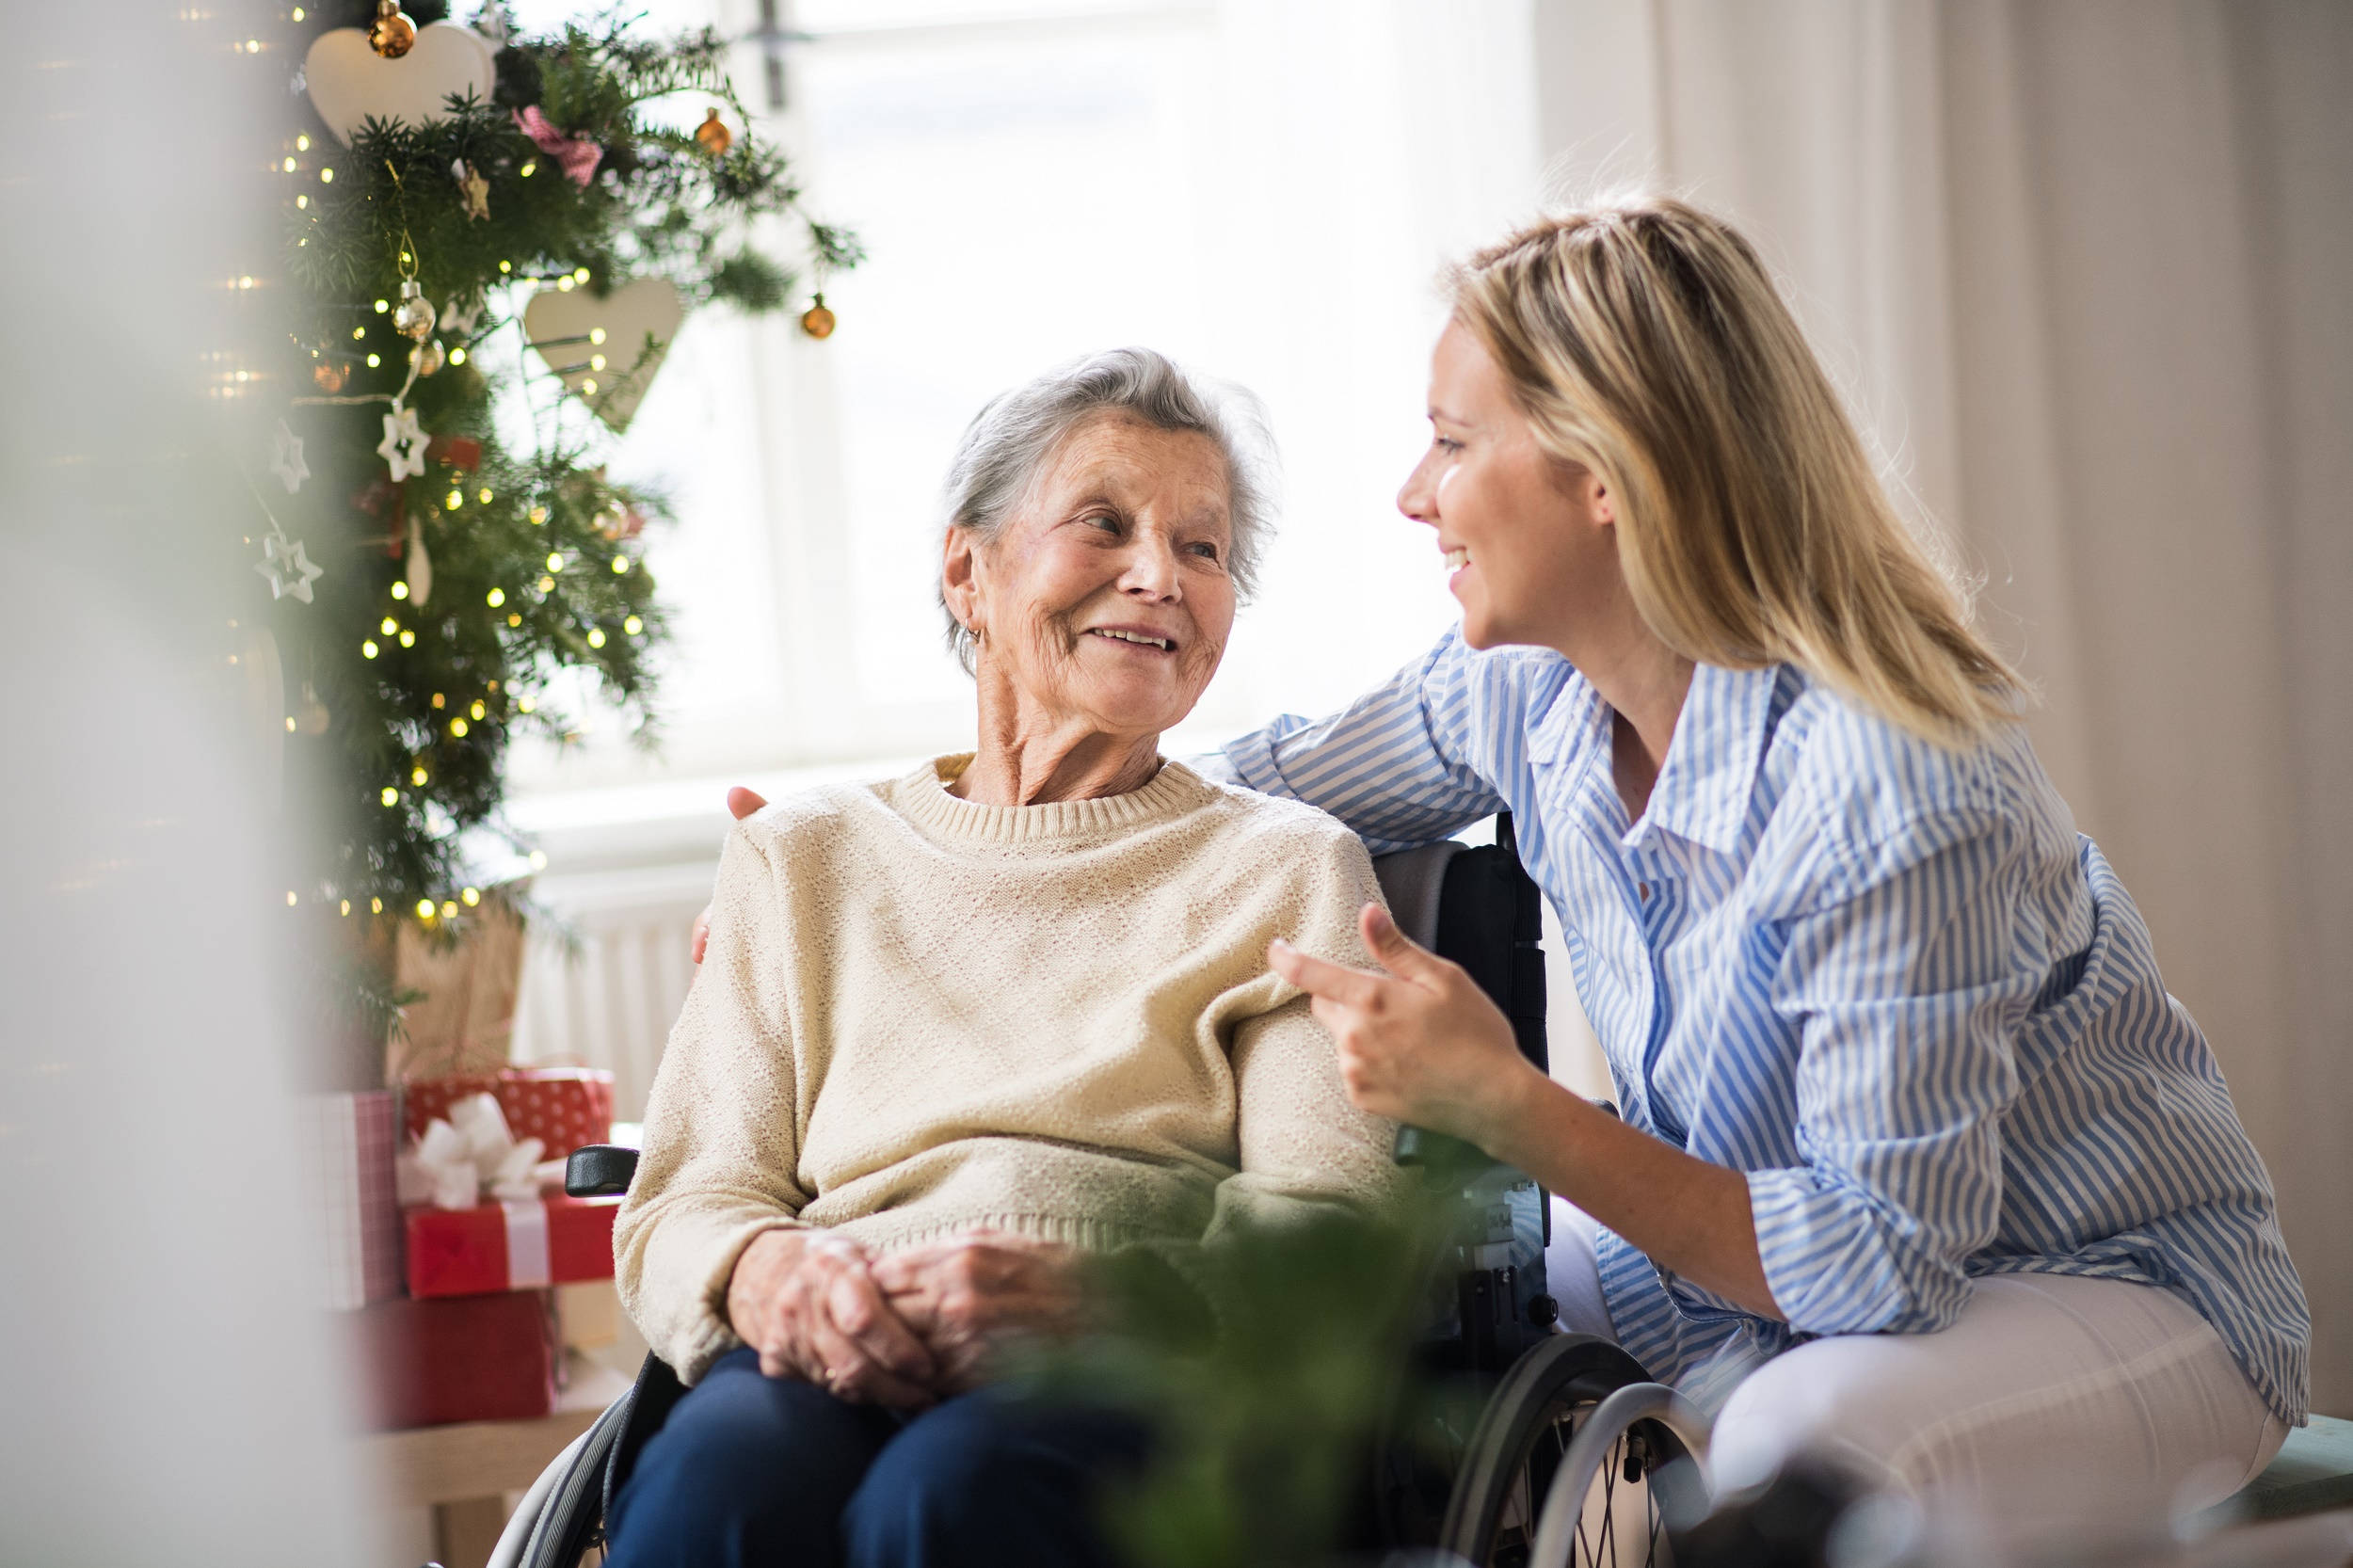 Care assistant comforts older person in wheelchair next to Christmas tree